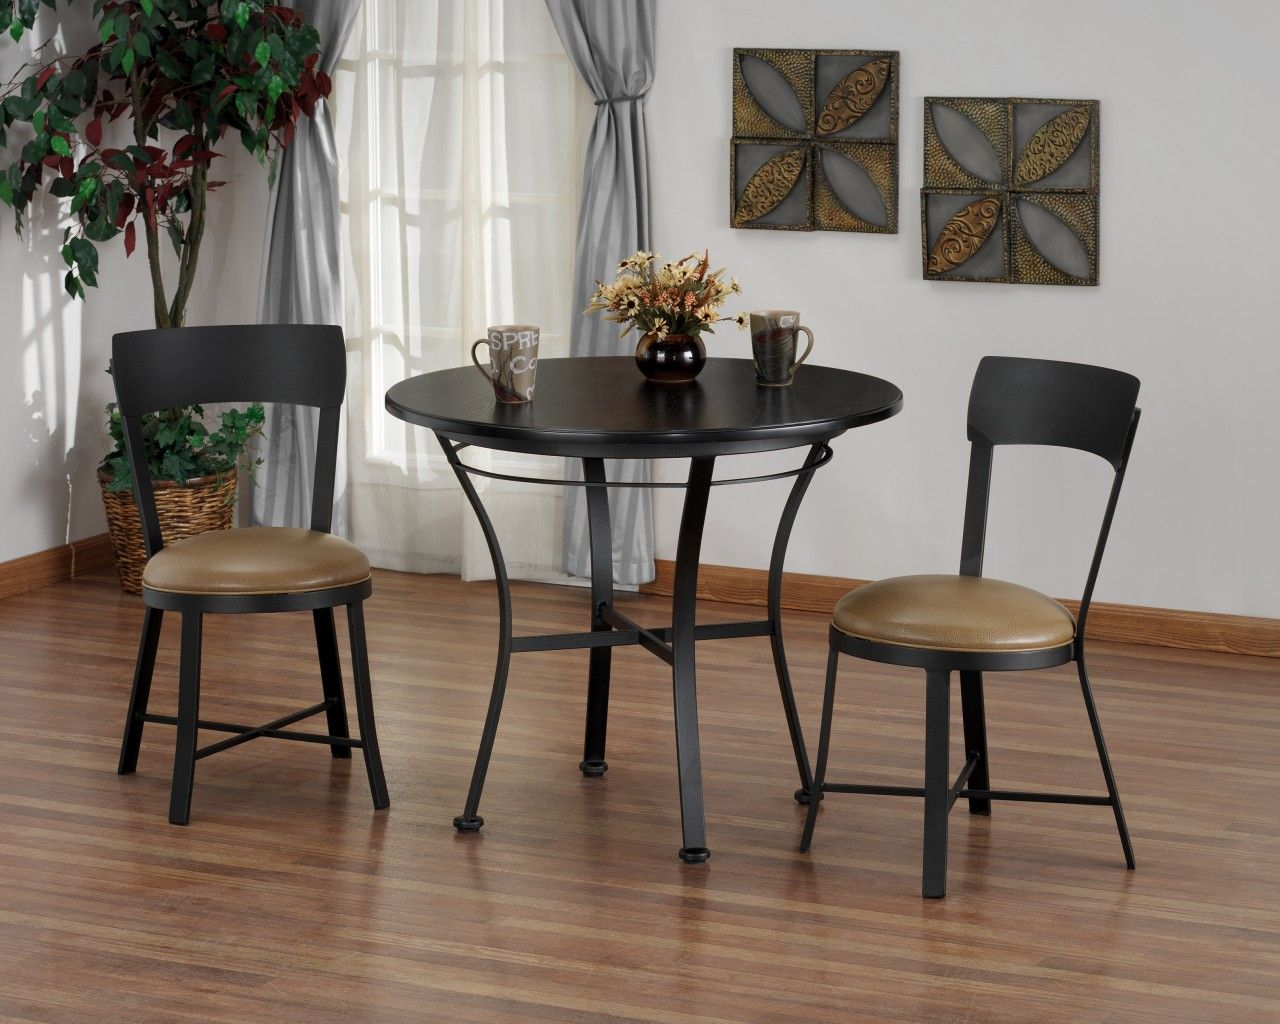 Designer Indoor Chairs Indoor Bistro Table And Chairs In Uk Bistro Chair And